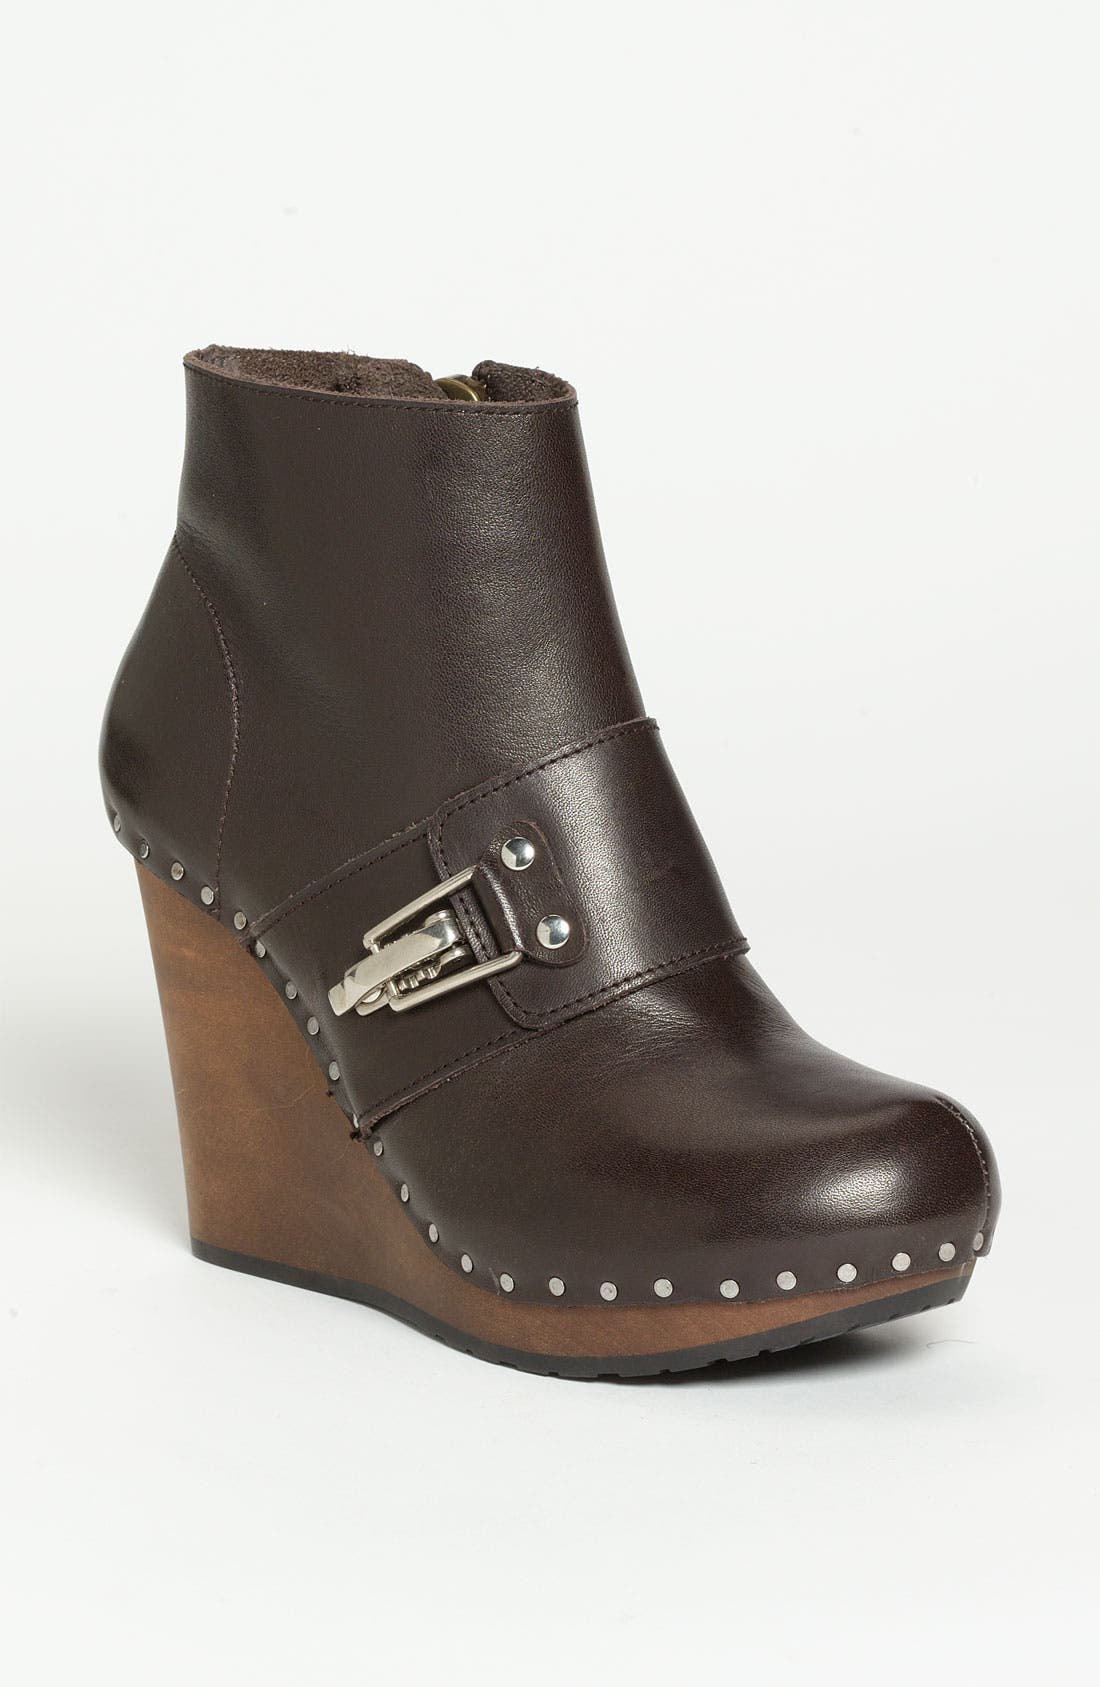 Alternate Image 1 Selected - See by Chloé Wedge Boot